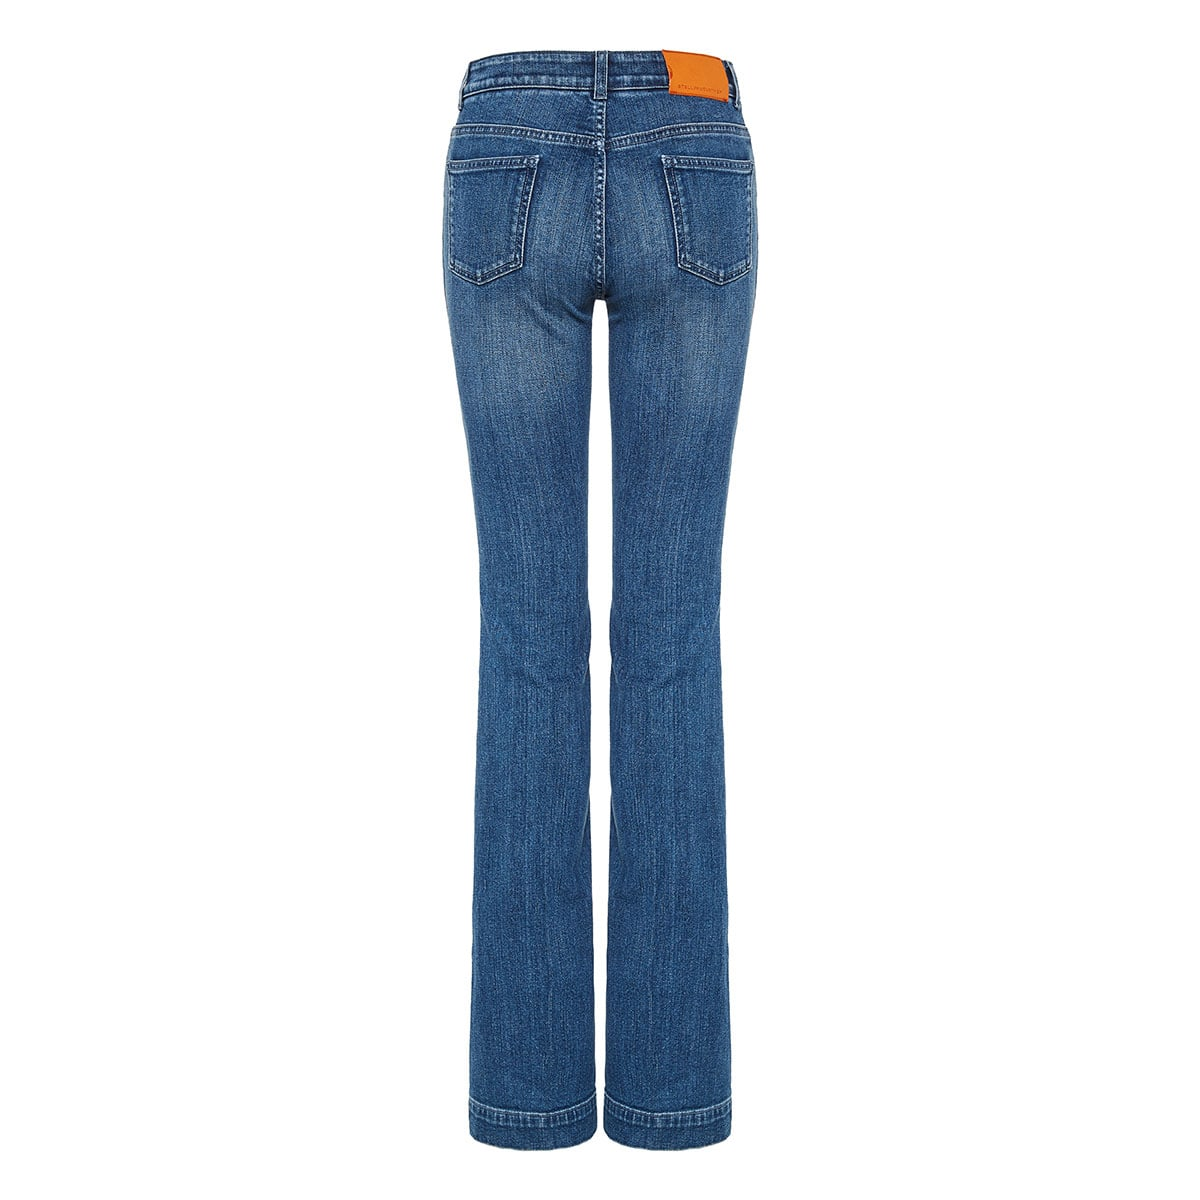 Bell-bottom distressed jeans